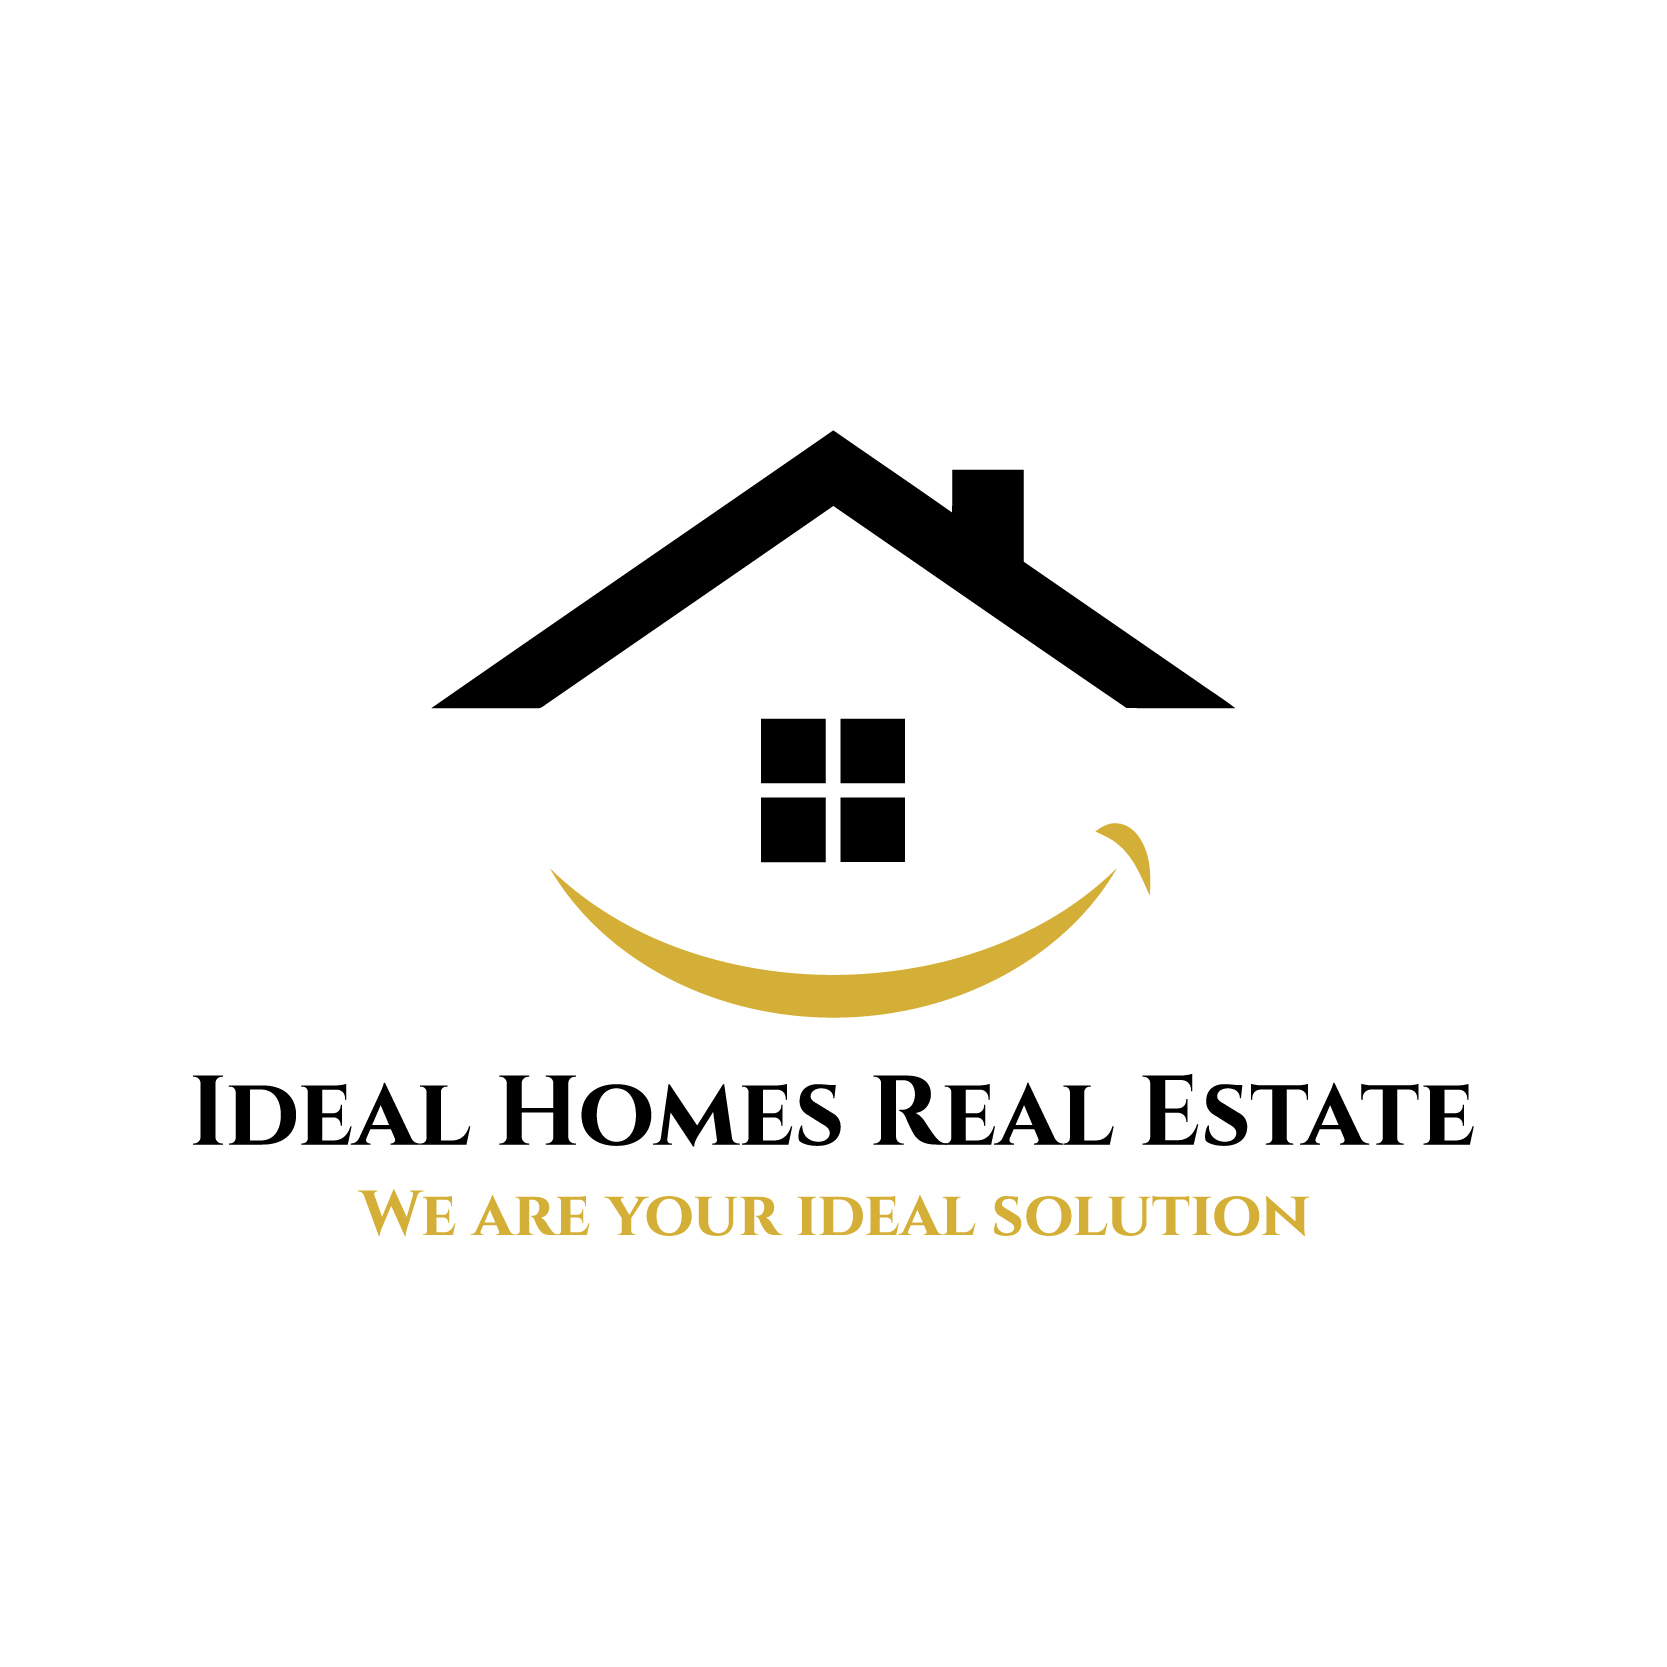 I-deal Homes logo